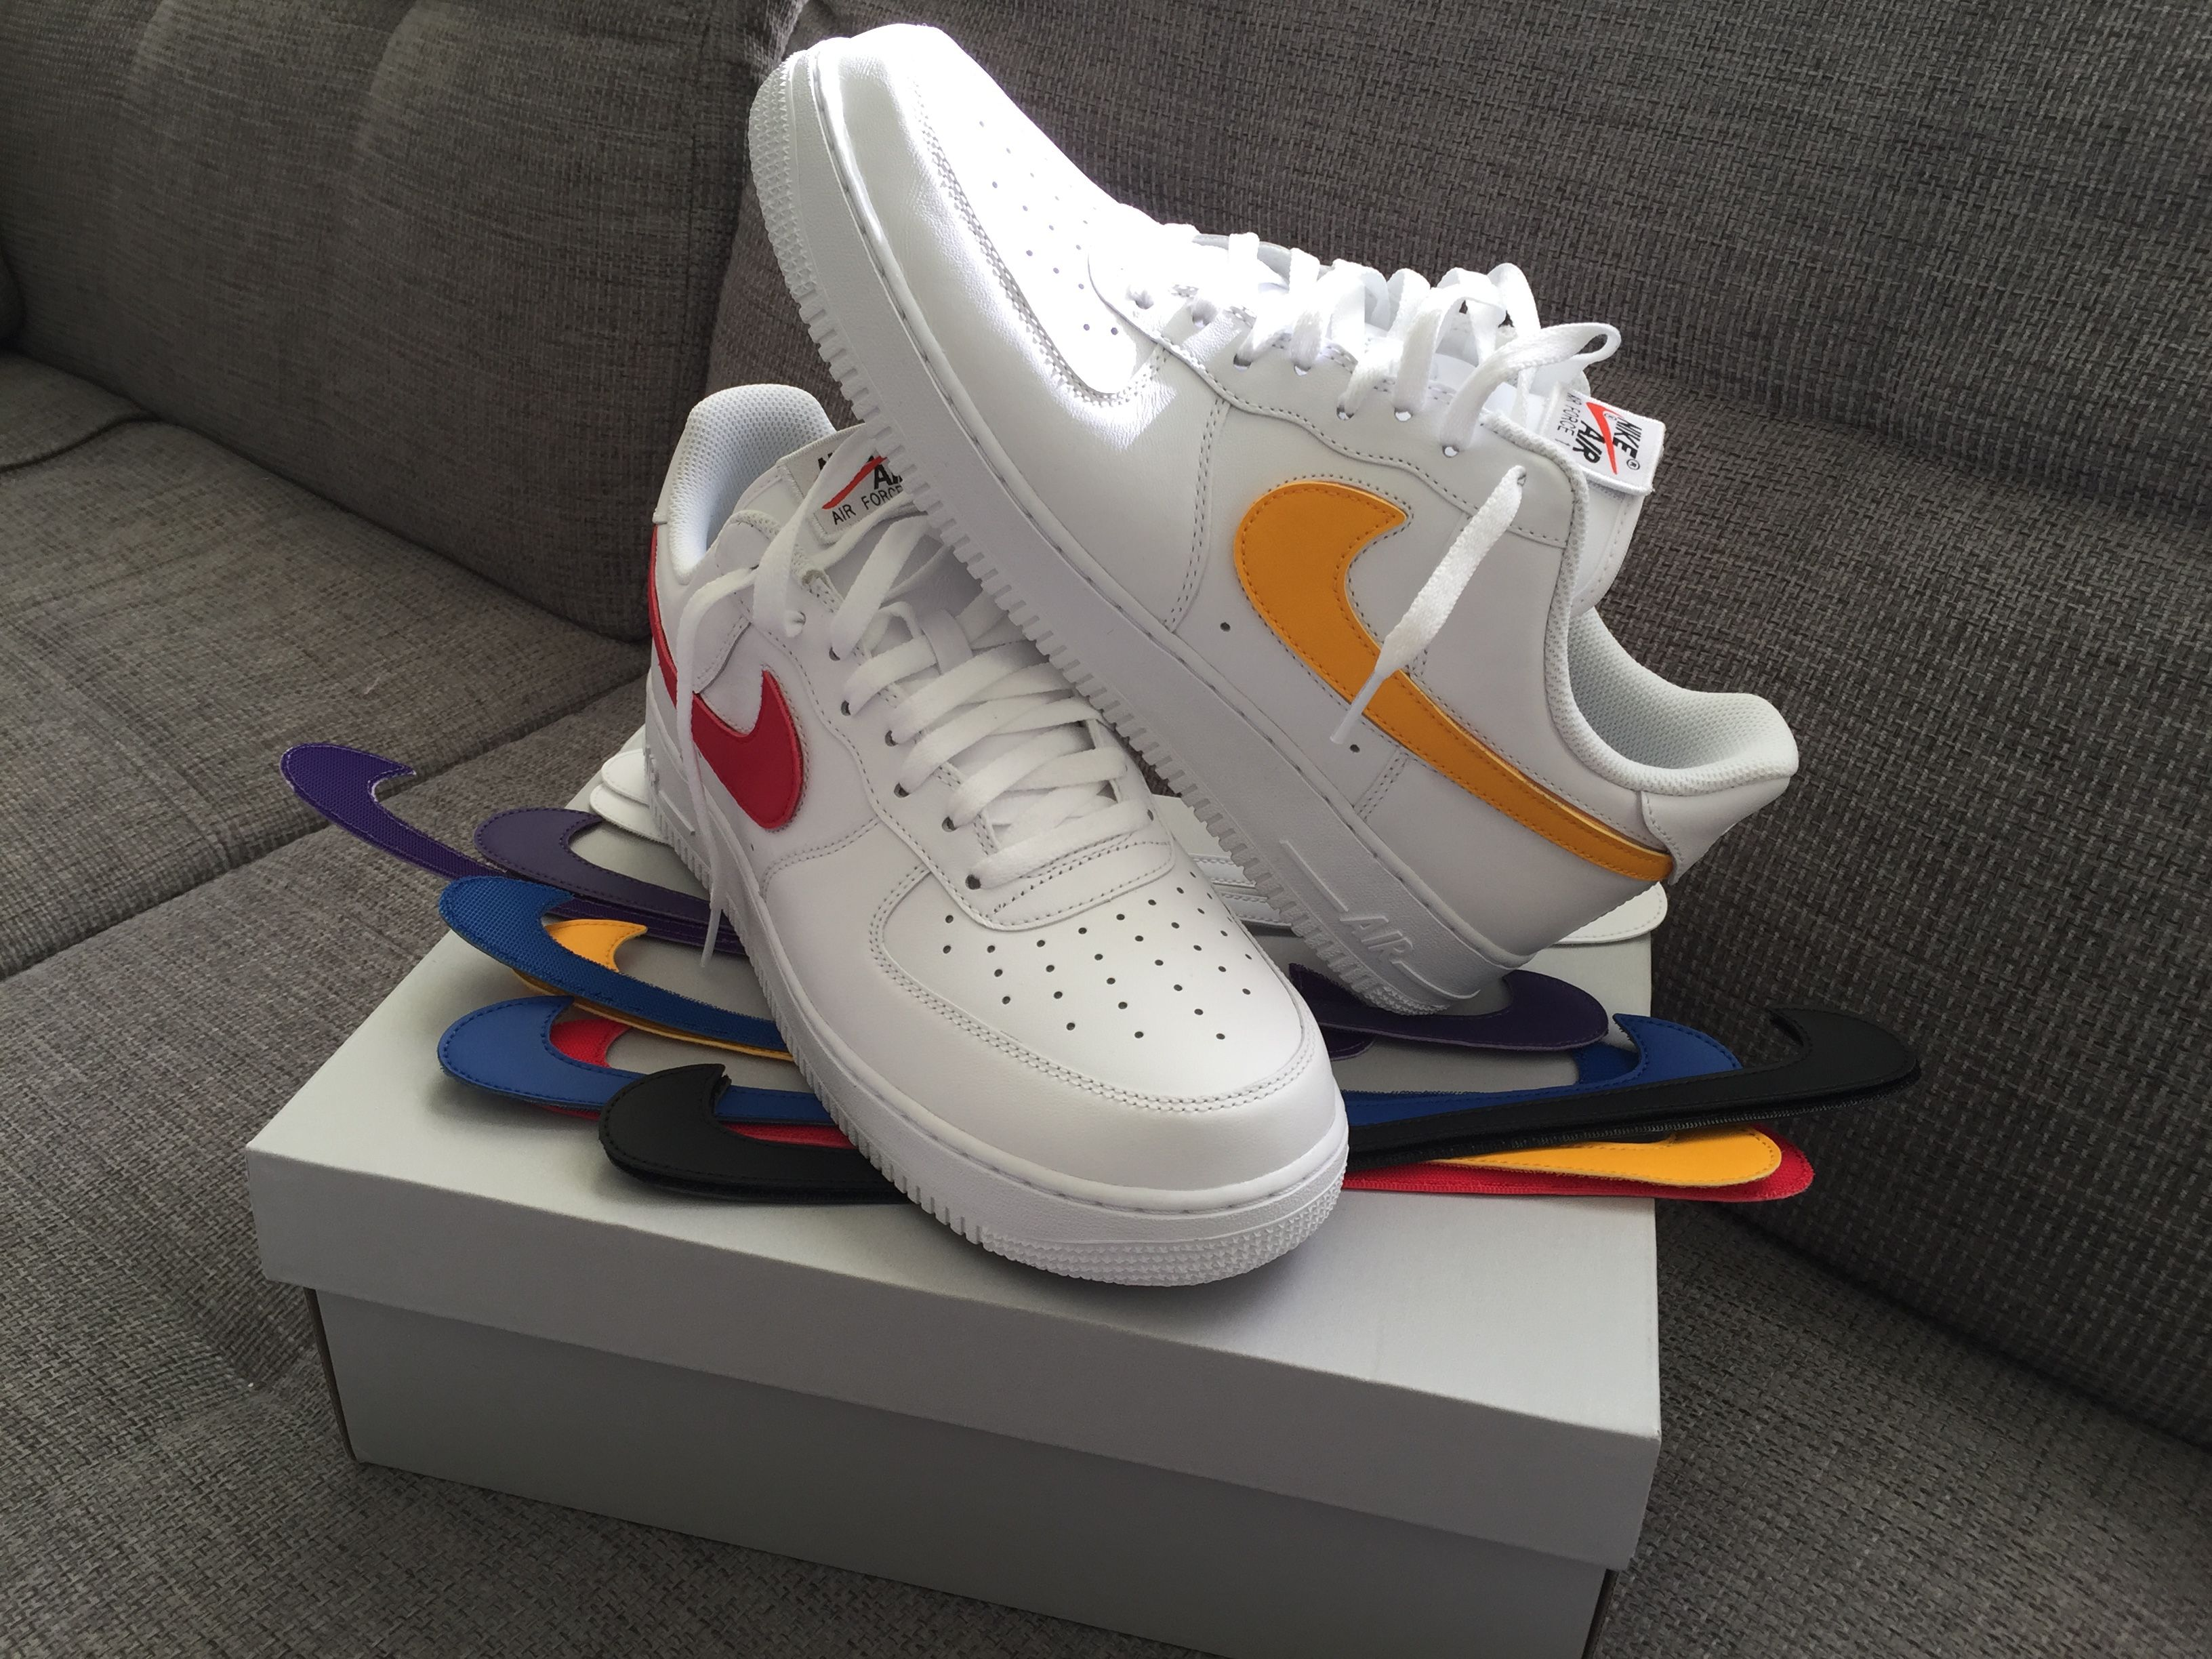 Nike Airforce1 Swooshpack Nike Kicks 2 Get Pinterest Nike Swooshpack Air Force 4dd5dc